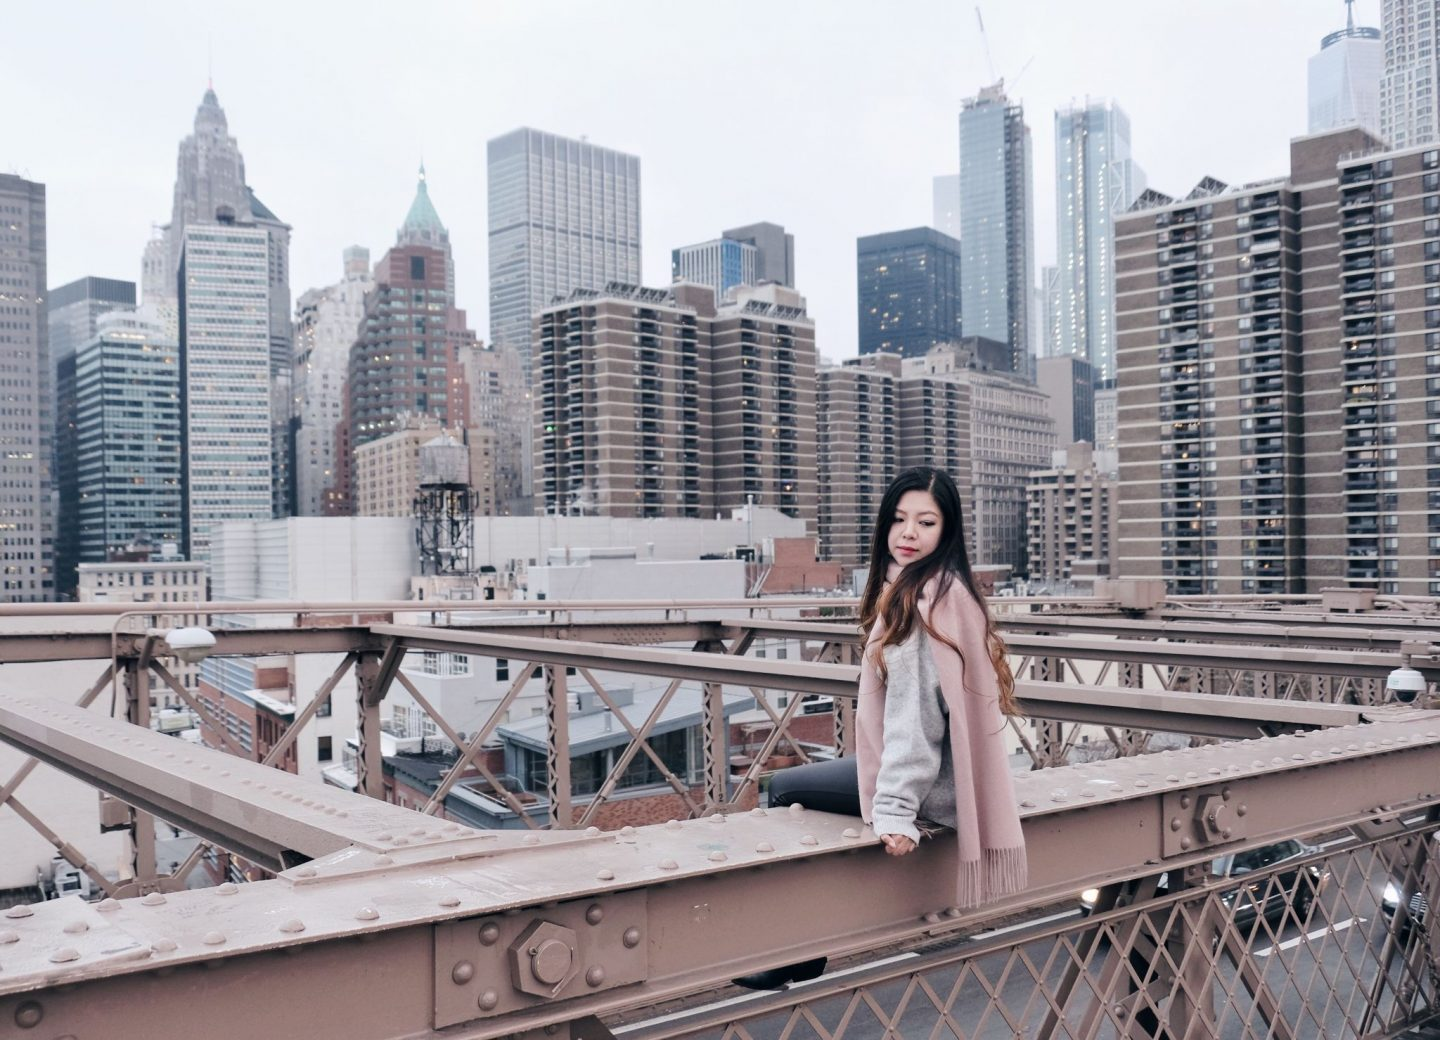 nyc brooklyn bridge blogger babe city scapes